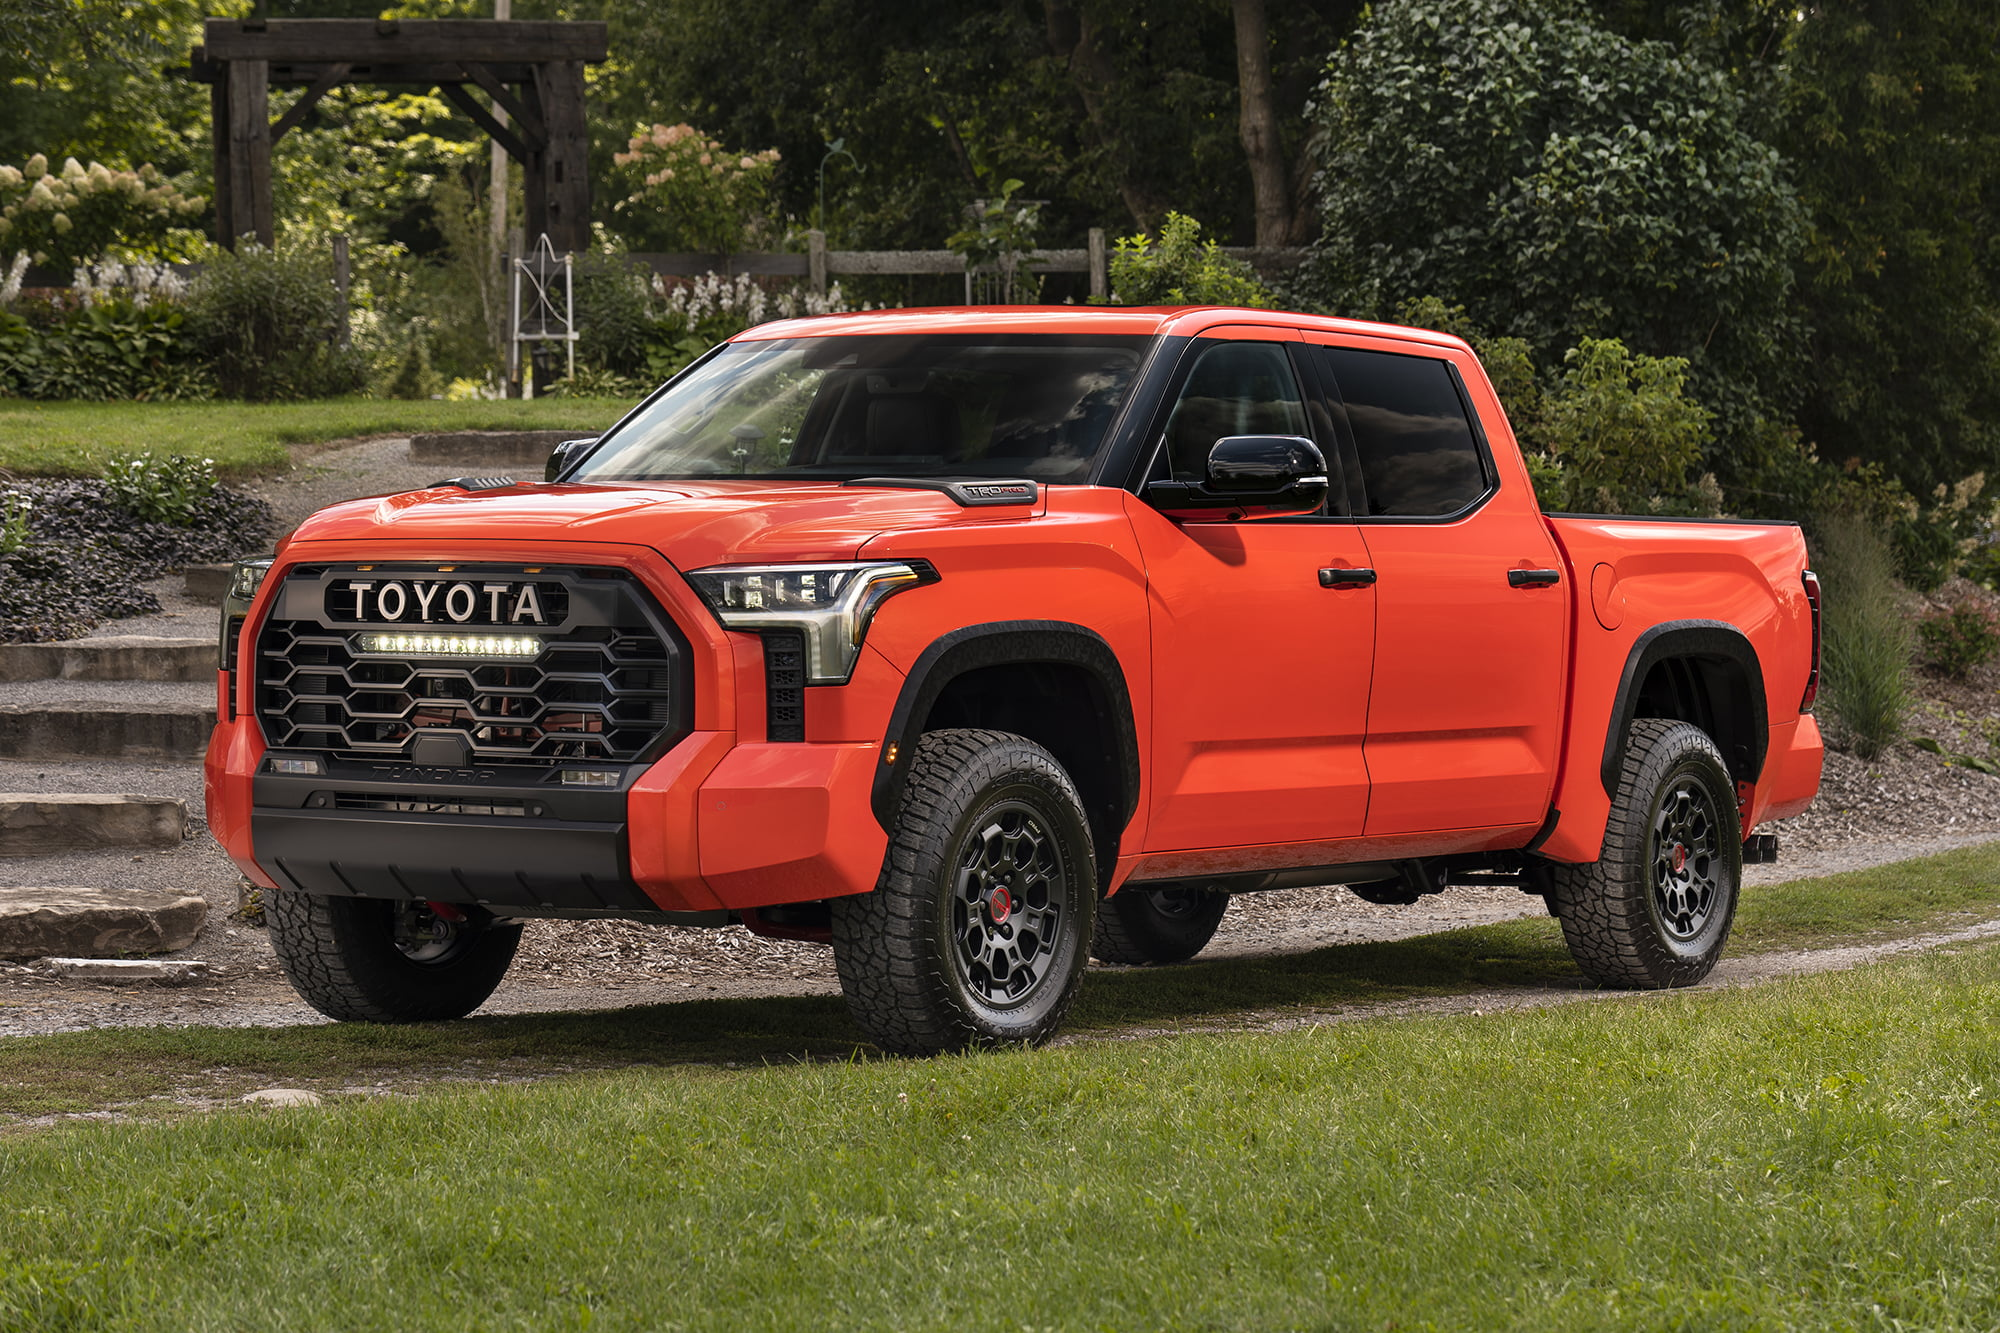 An Experts Review of the All New 2022 Toyota Tundra